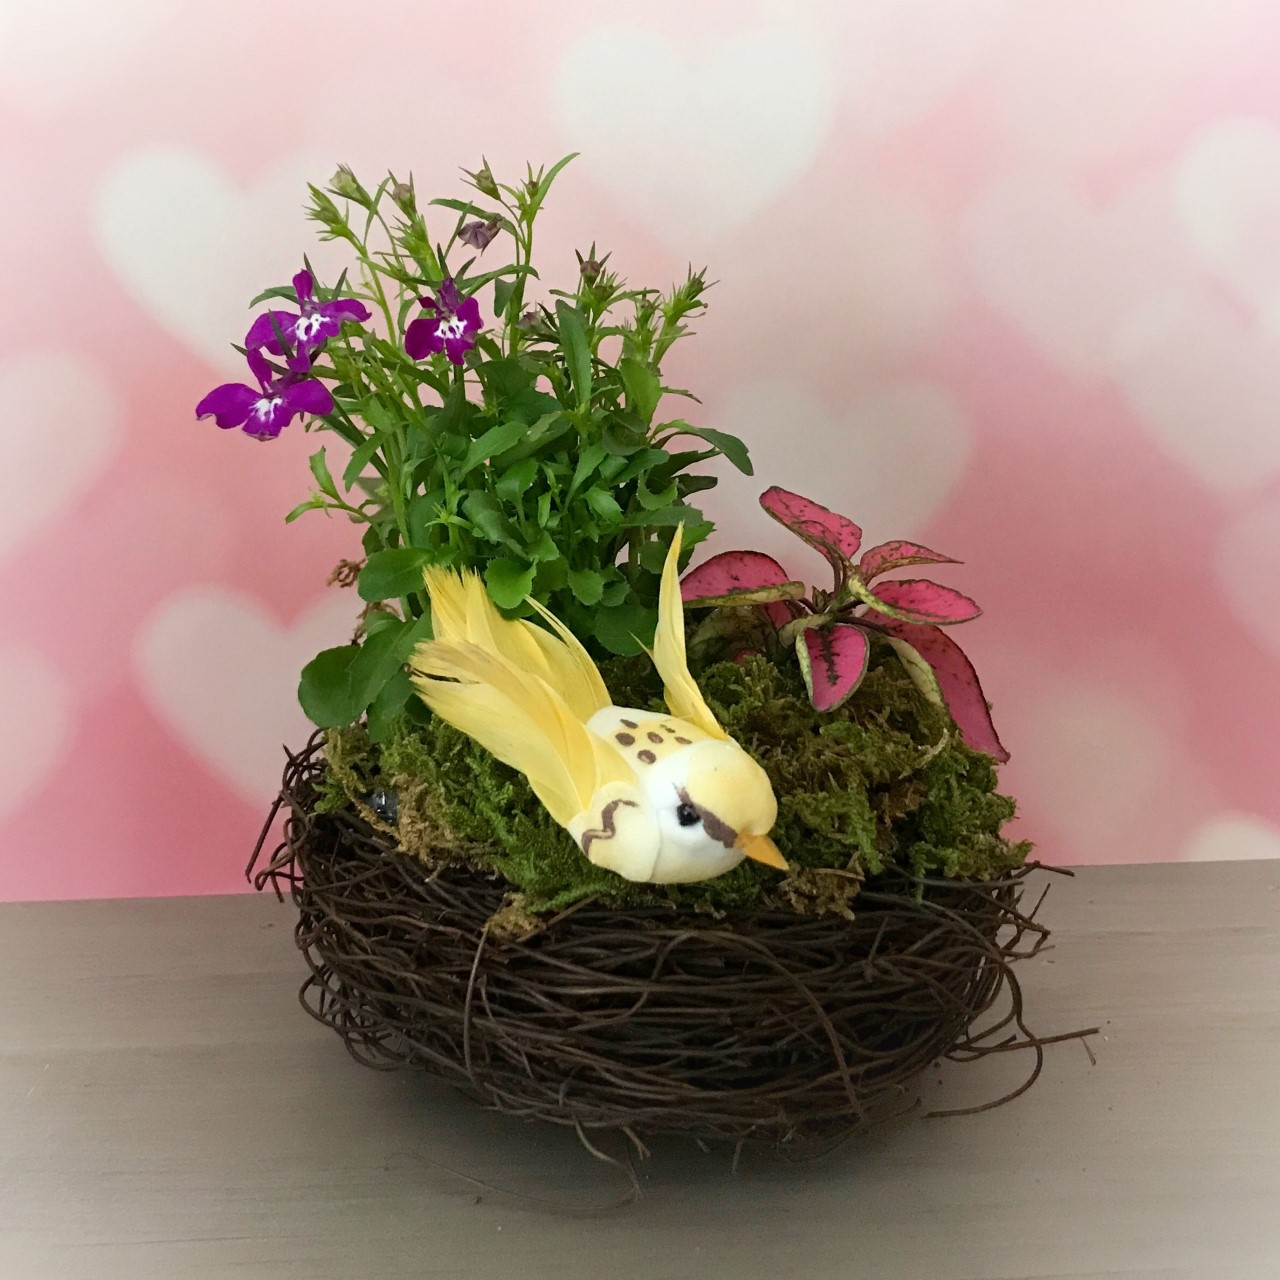 Make a Nest Planter for Mother's Day